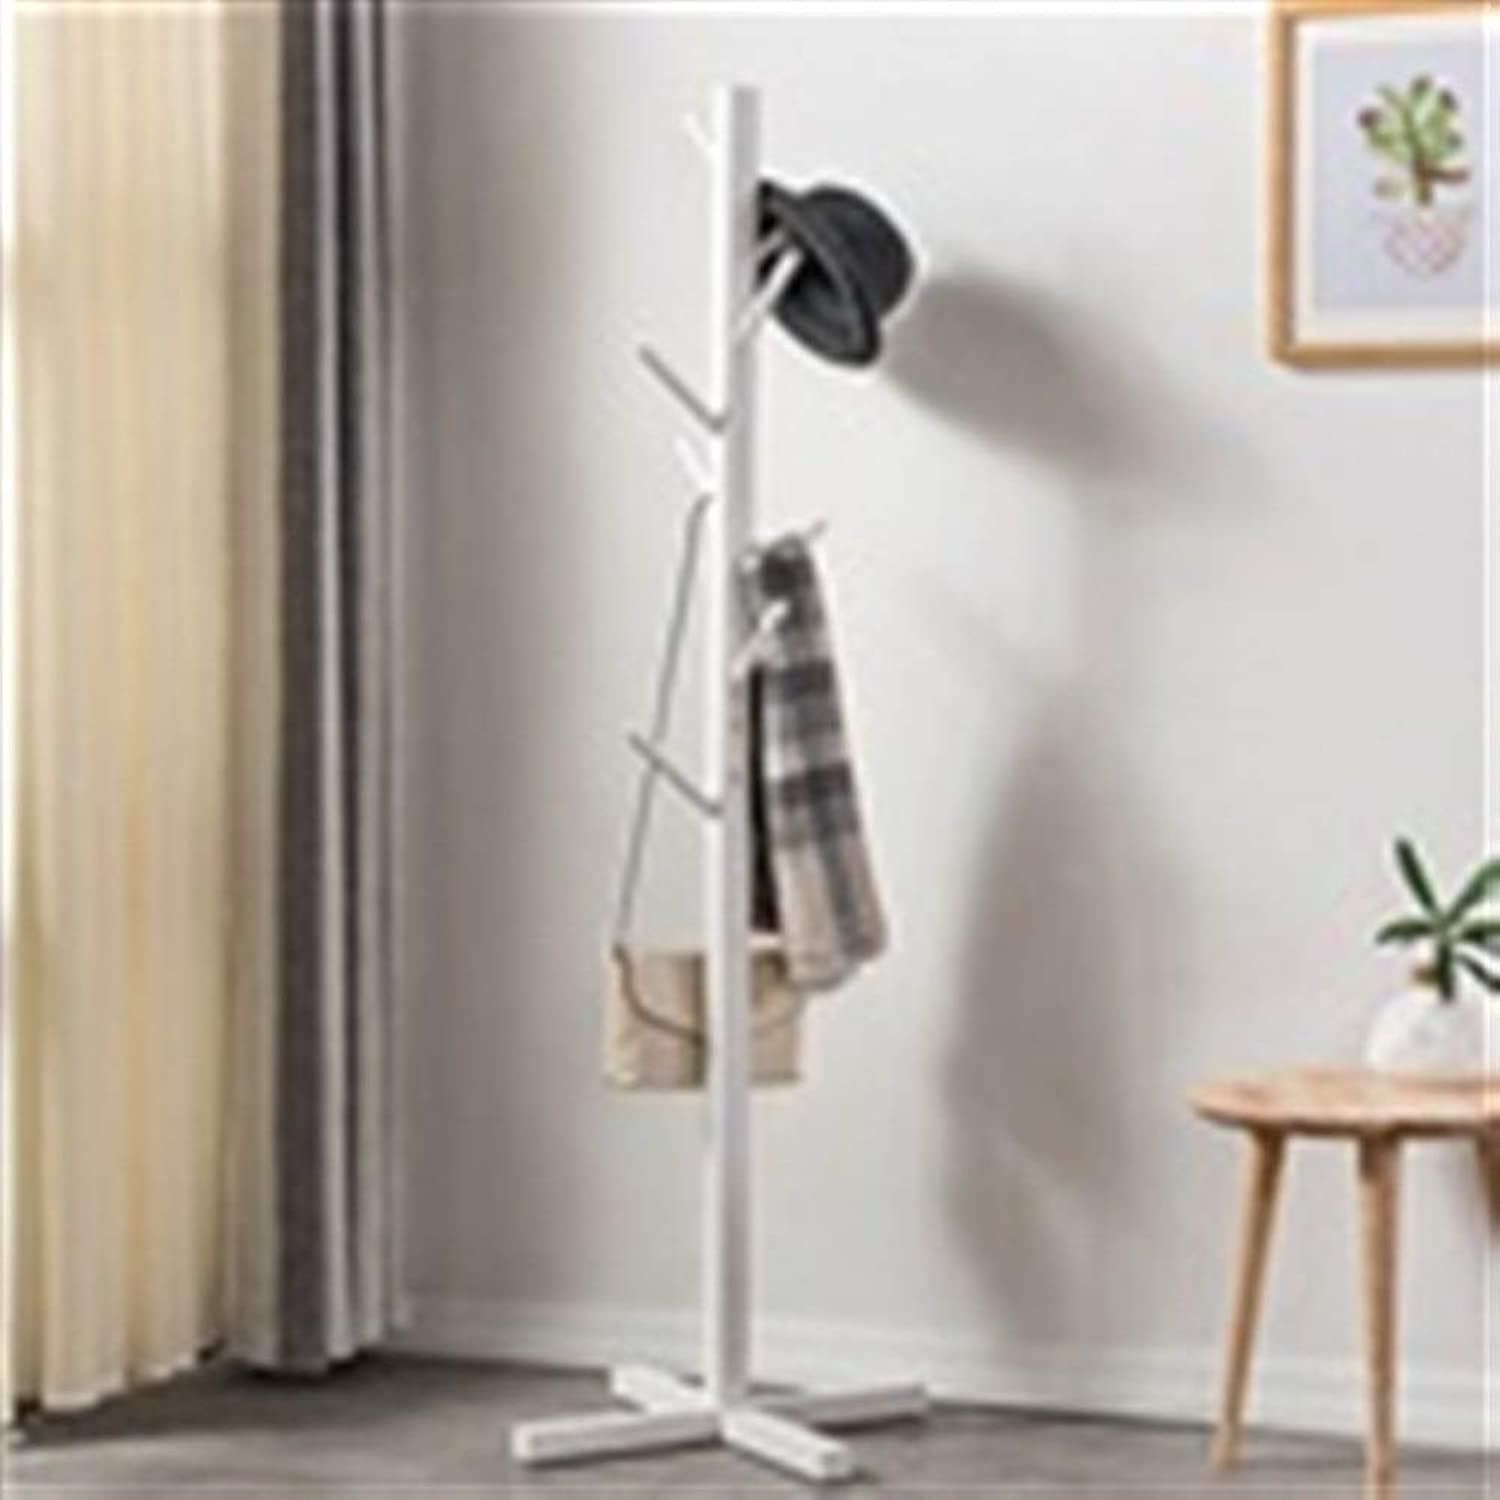 Simple Solid Wood Floor Coat Rack Stand Living Room Modern Clothes Rack Fashion Free Standing Hangers Bedroom Simple Storage Clothes Hook Hanger Size  165x50x50cm (color   White)